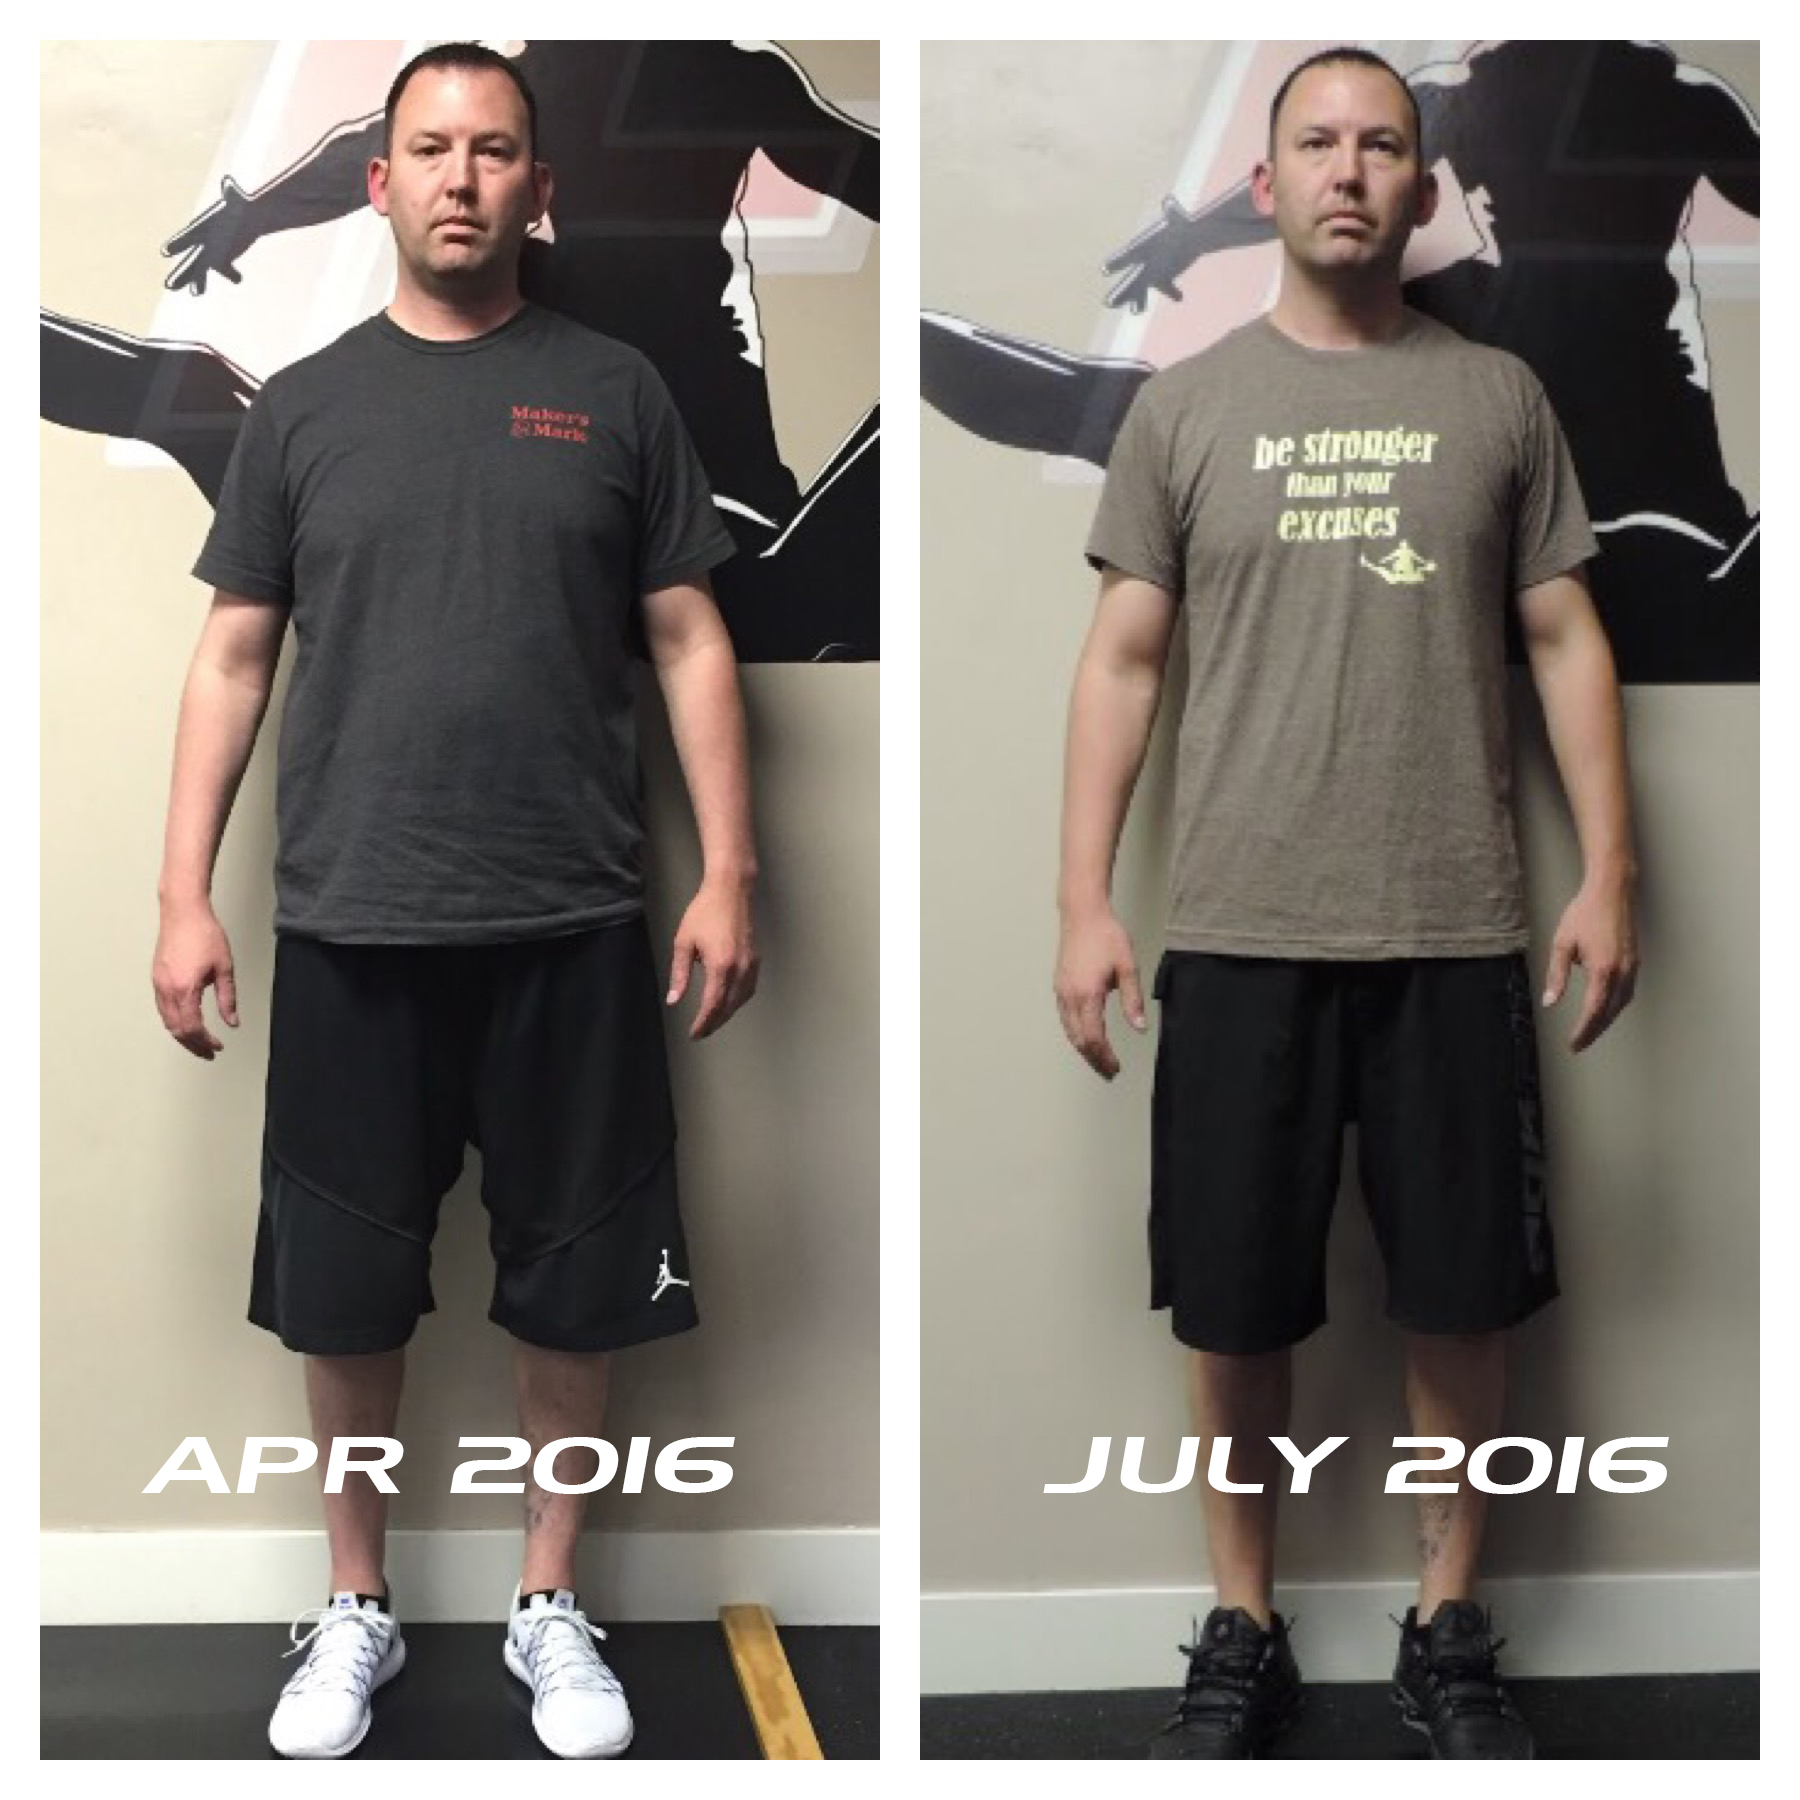 transform fitness before after photo Kyle